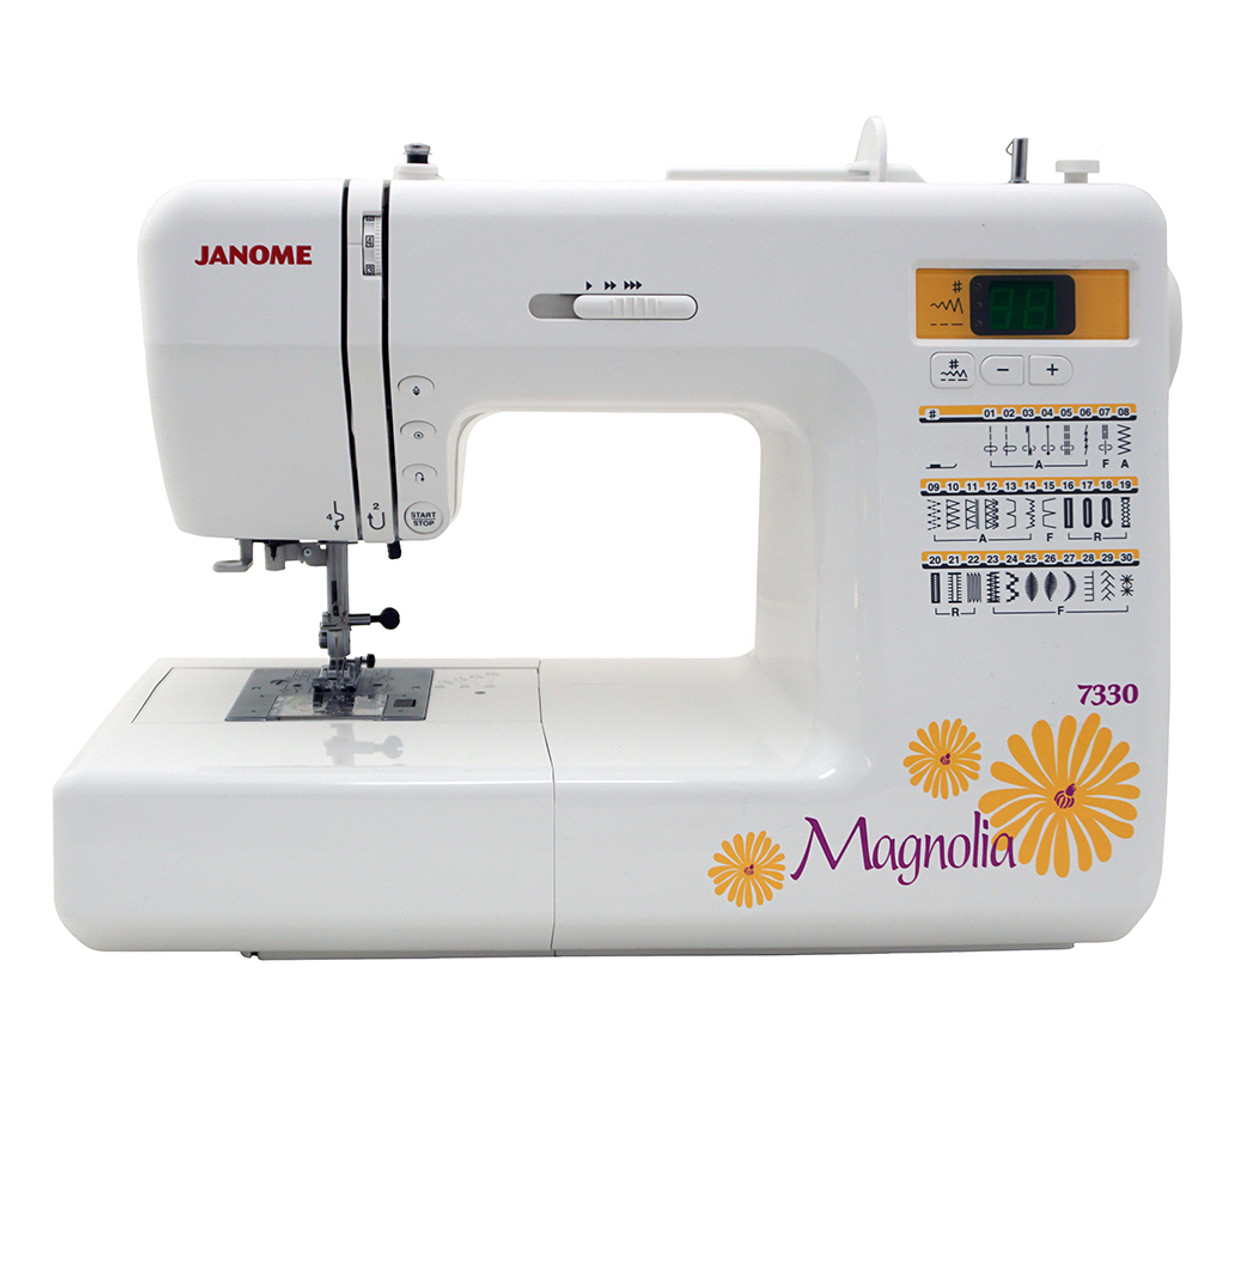 janome 7330 computerized sewing machine with exclusive bonus bundle rh sewvacdirect com Janome Embroidery Design Library janome mystyle 20 user manual